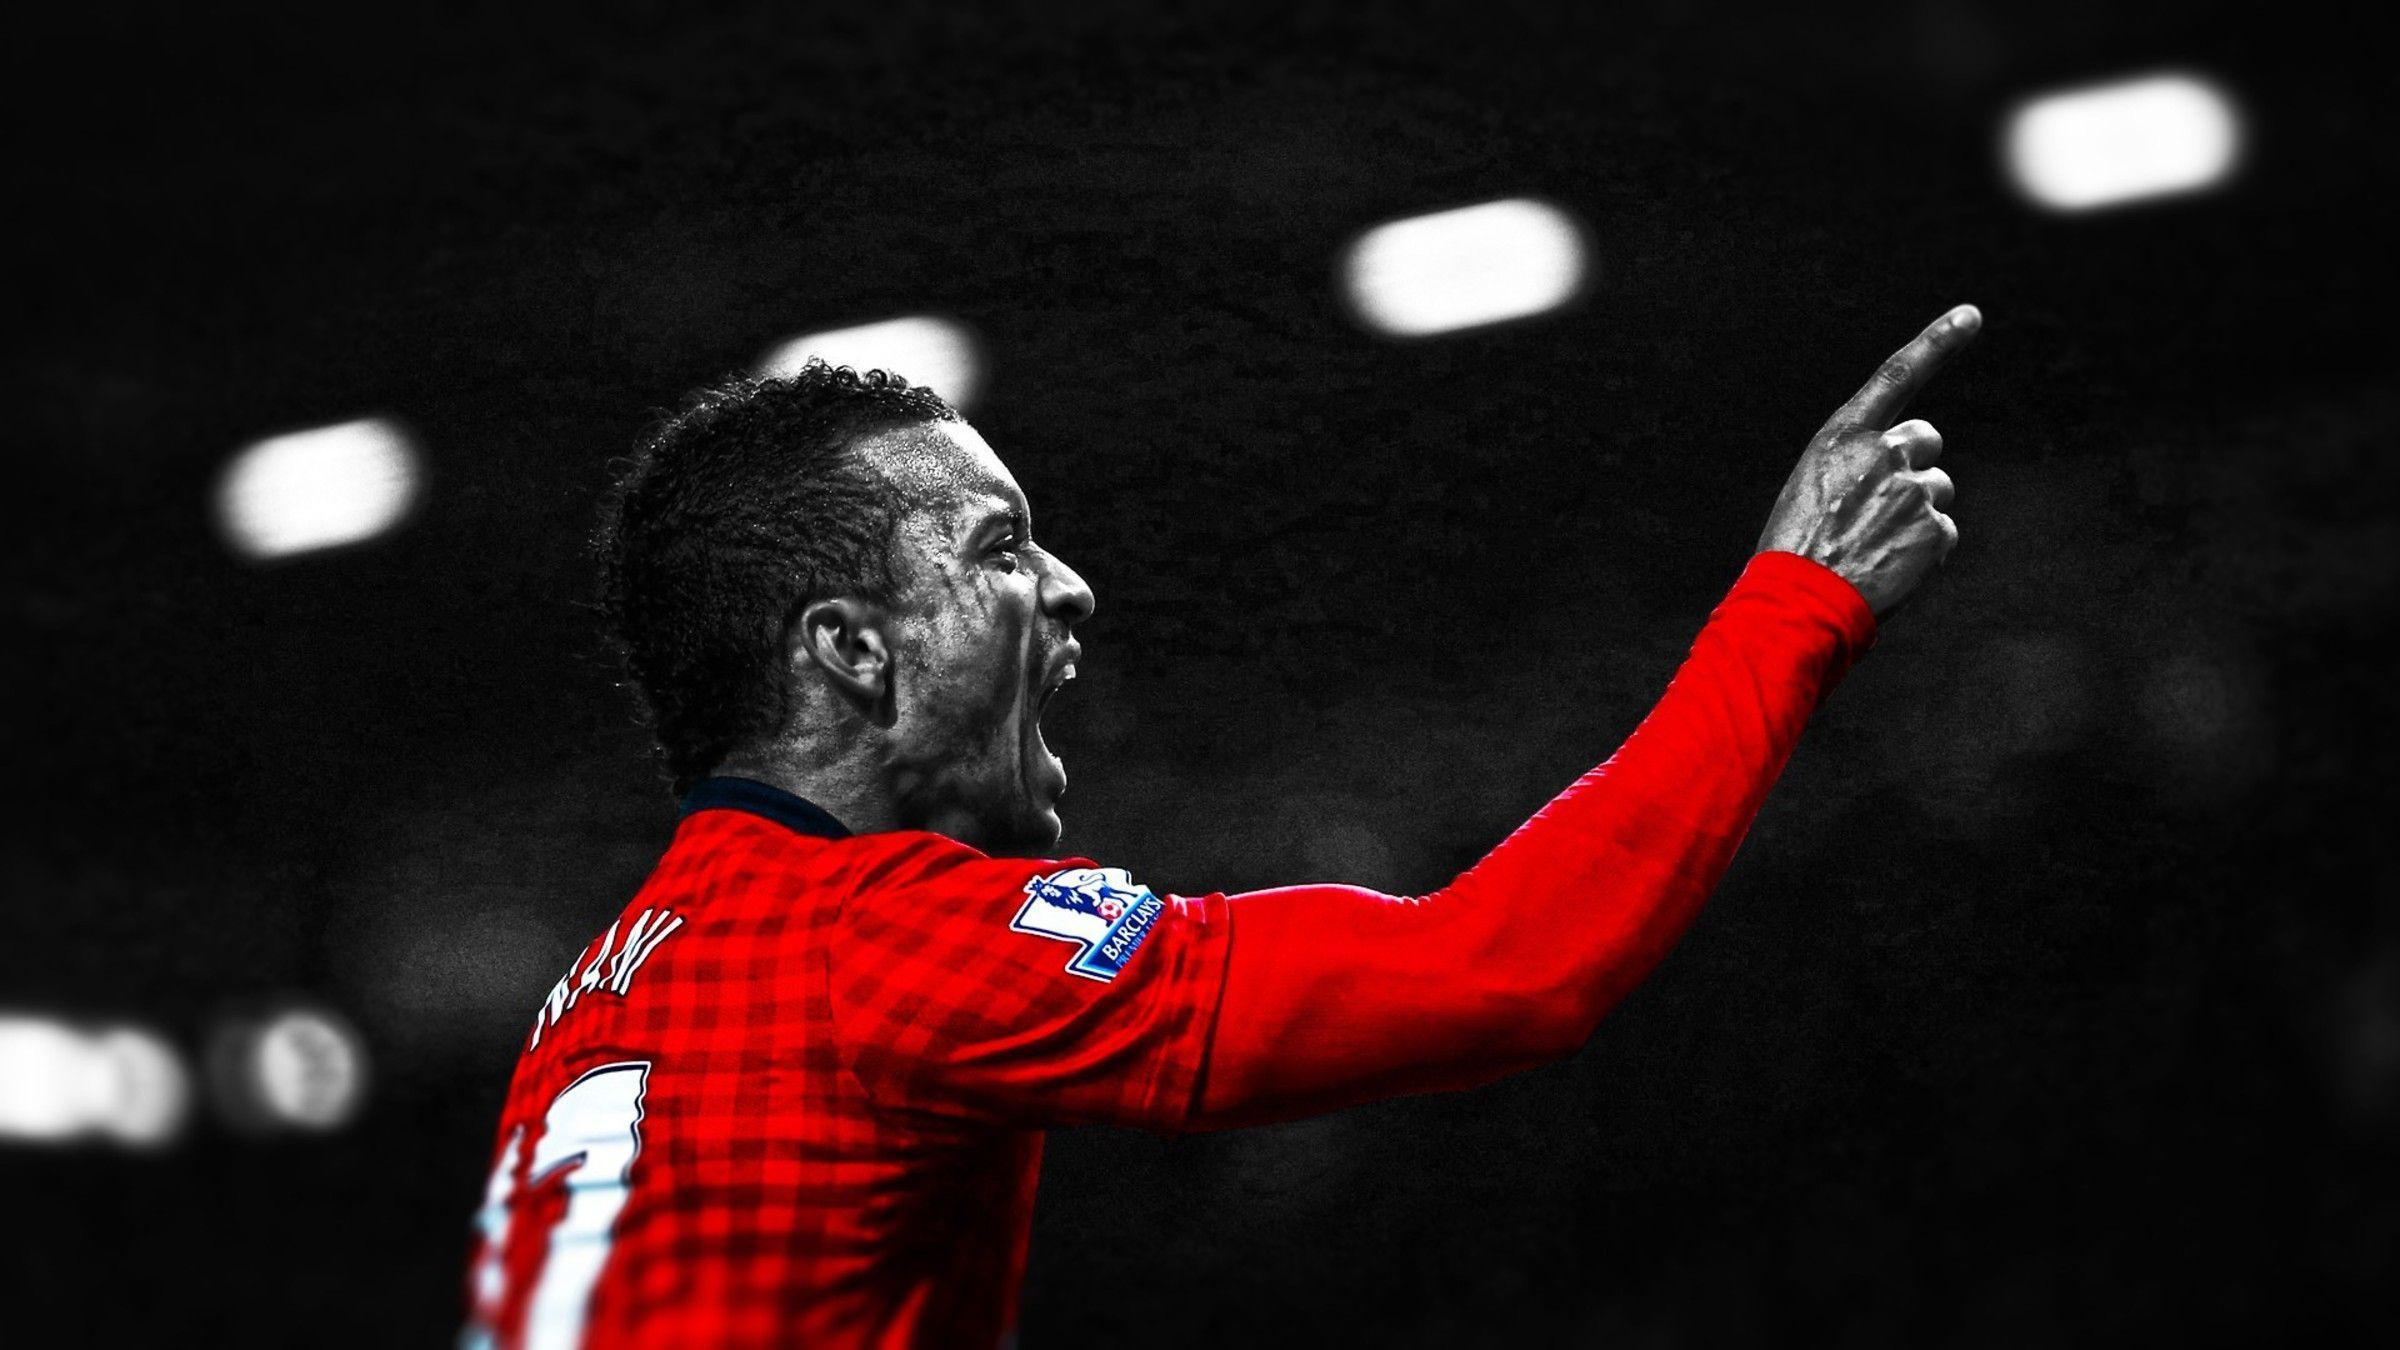 Premier league stars cutout football player luis wallpapers